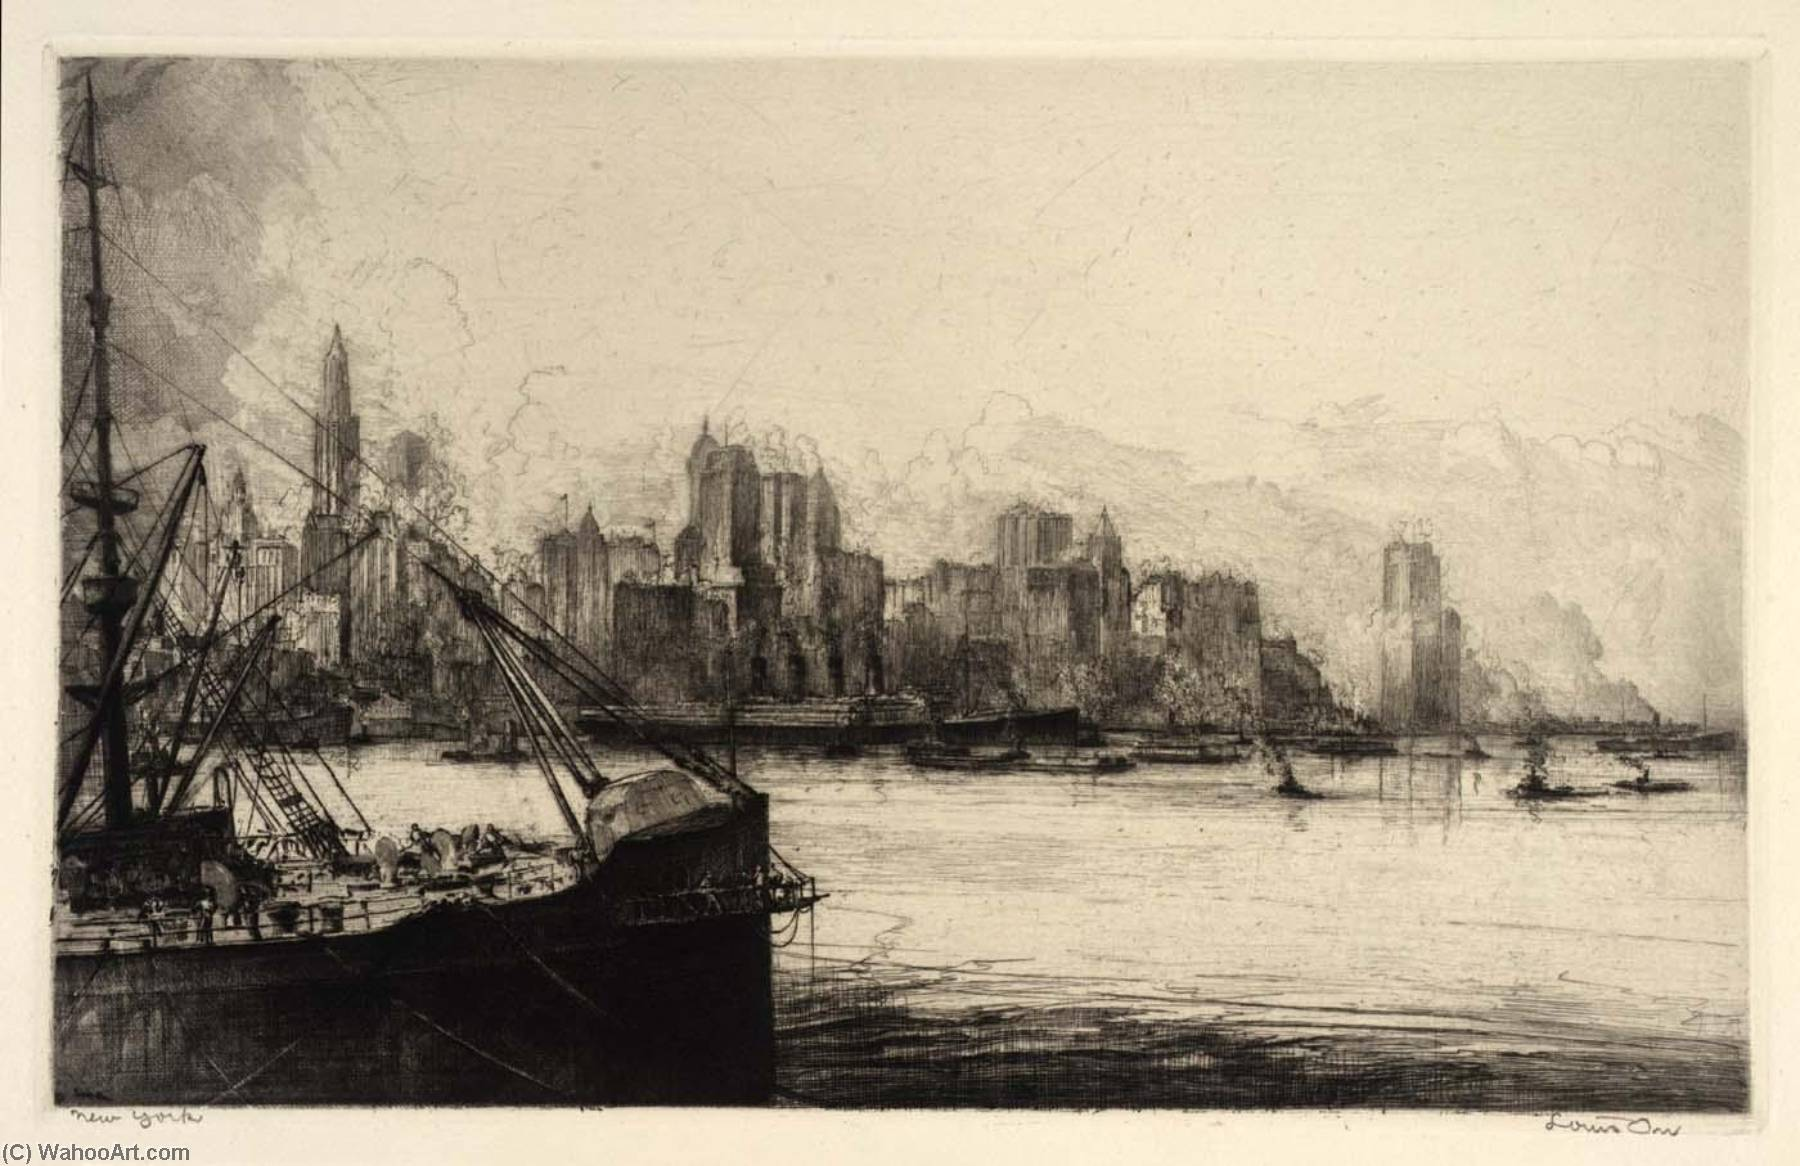 (Ports of America, portfolio) New York, Etching by Louis Orr